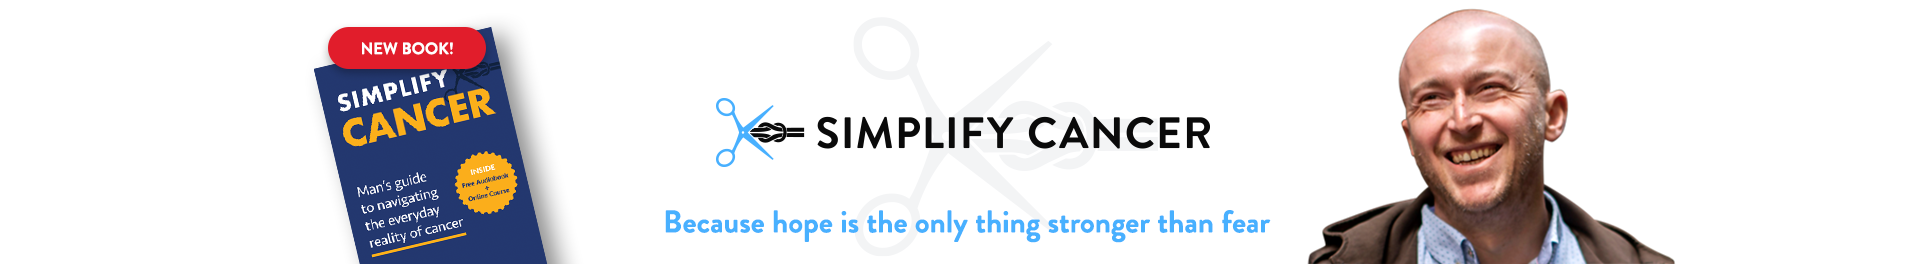 Simplify Cancer website banner with Joe Bakhmoutski photo, inspiration quote and book cover